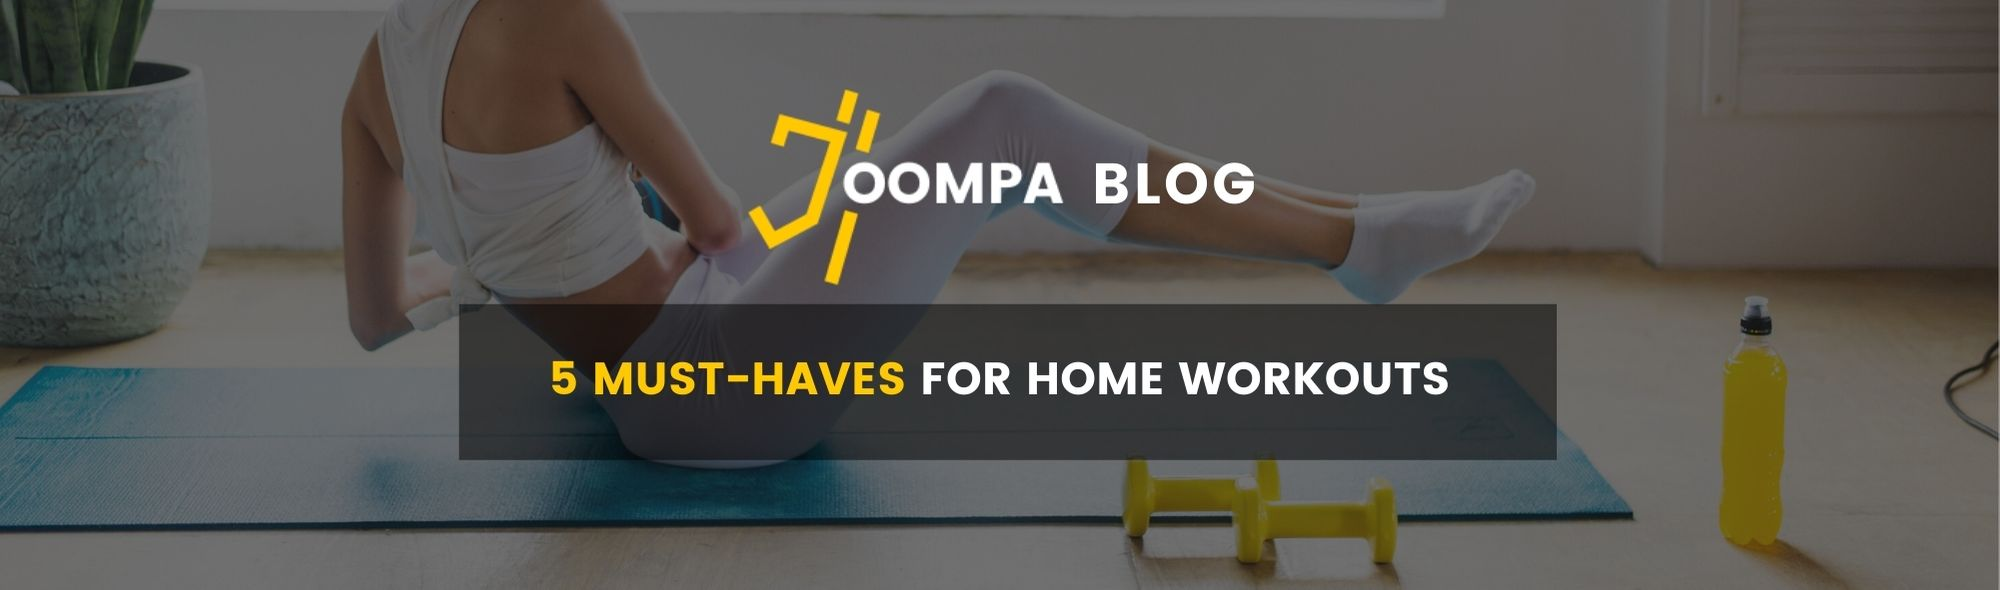 5 Must-Haves for Home Workouts